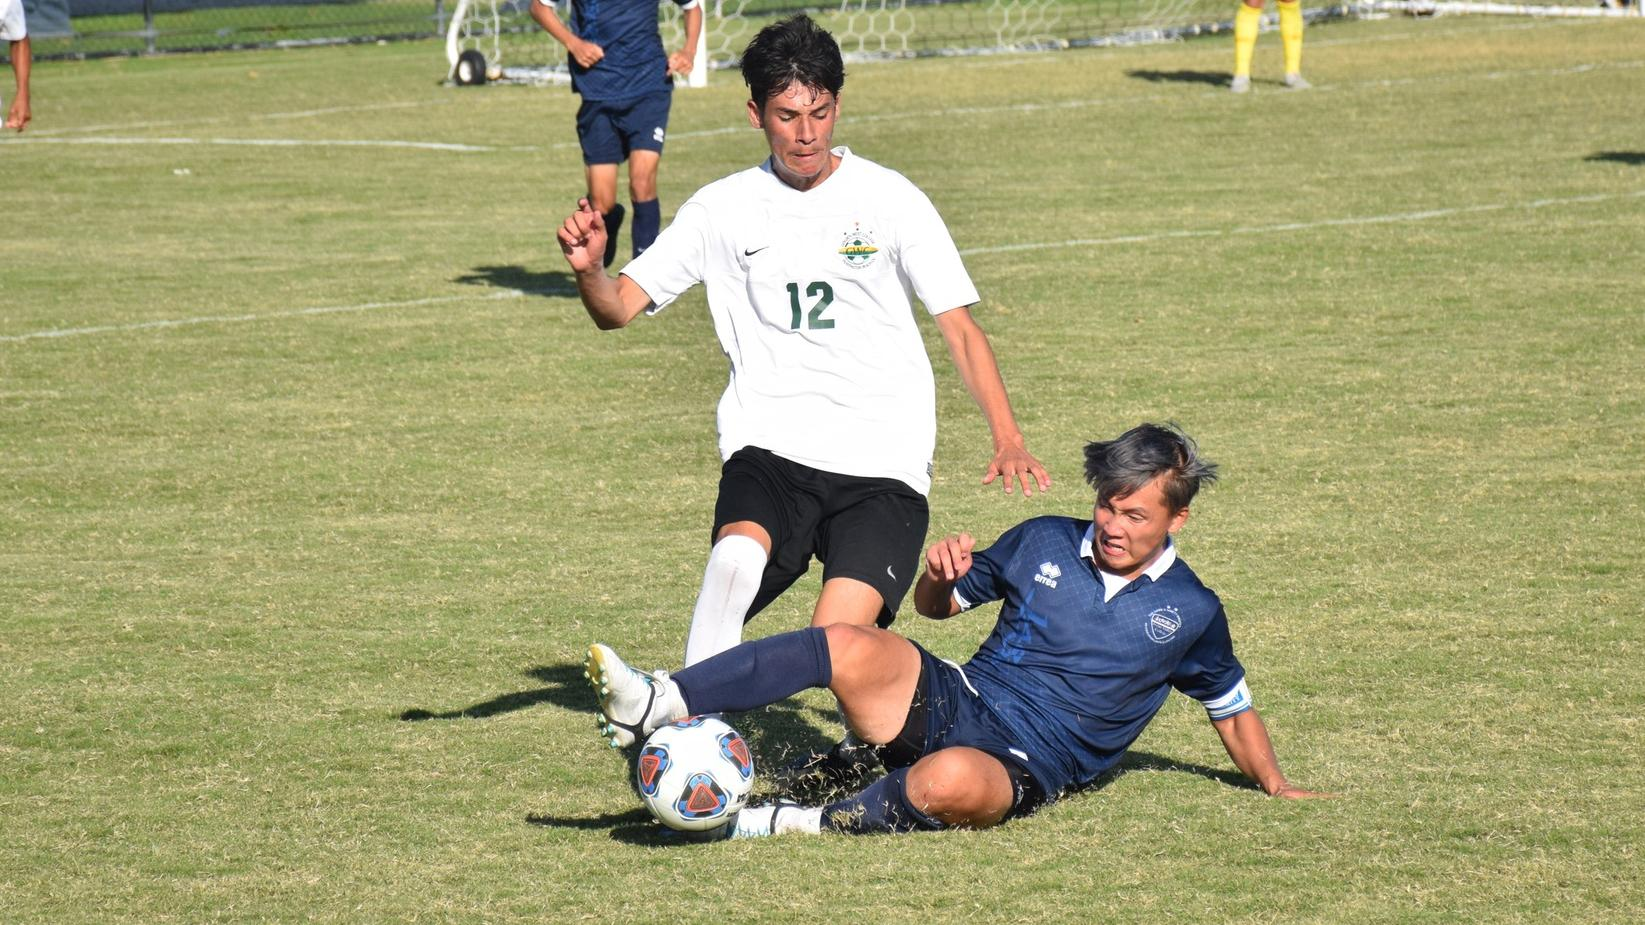 Men's soccer team battles to 1-1 draw with Golden West